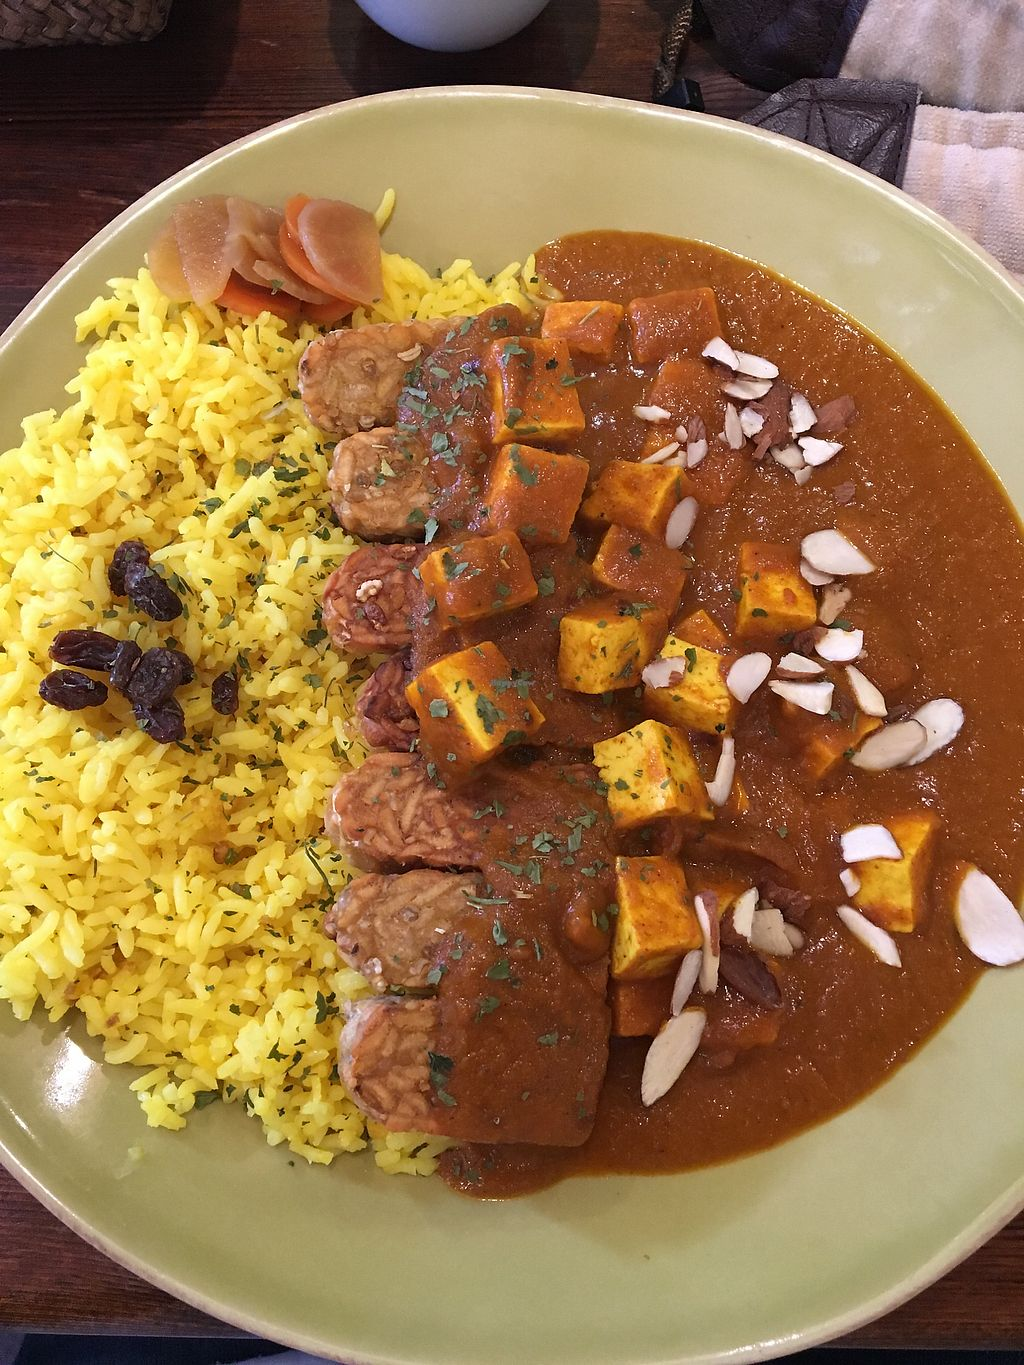 """Photo of VegiLicious  by <a href=""""/members/profile/jkseoulcraic"""">jkseoulcraic</a> <br/>Gf tempeh with tofu curry <br/> March 18, 2018  - <a href='/contact/abuse/image/36781/372661'>Report</a>"""